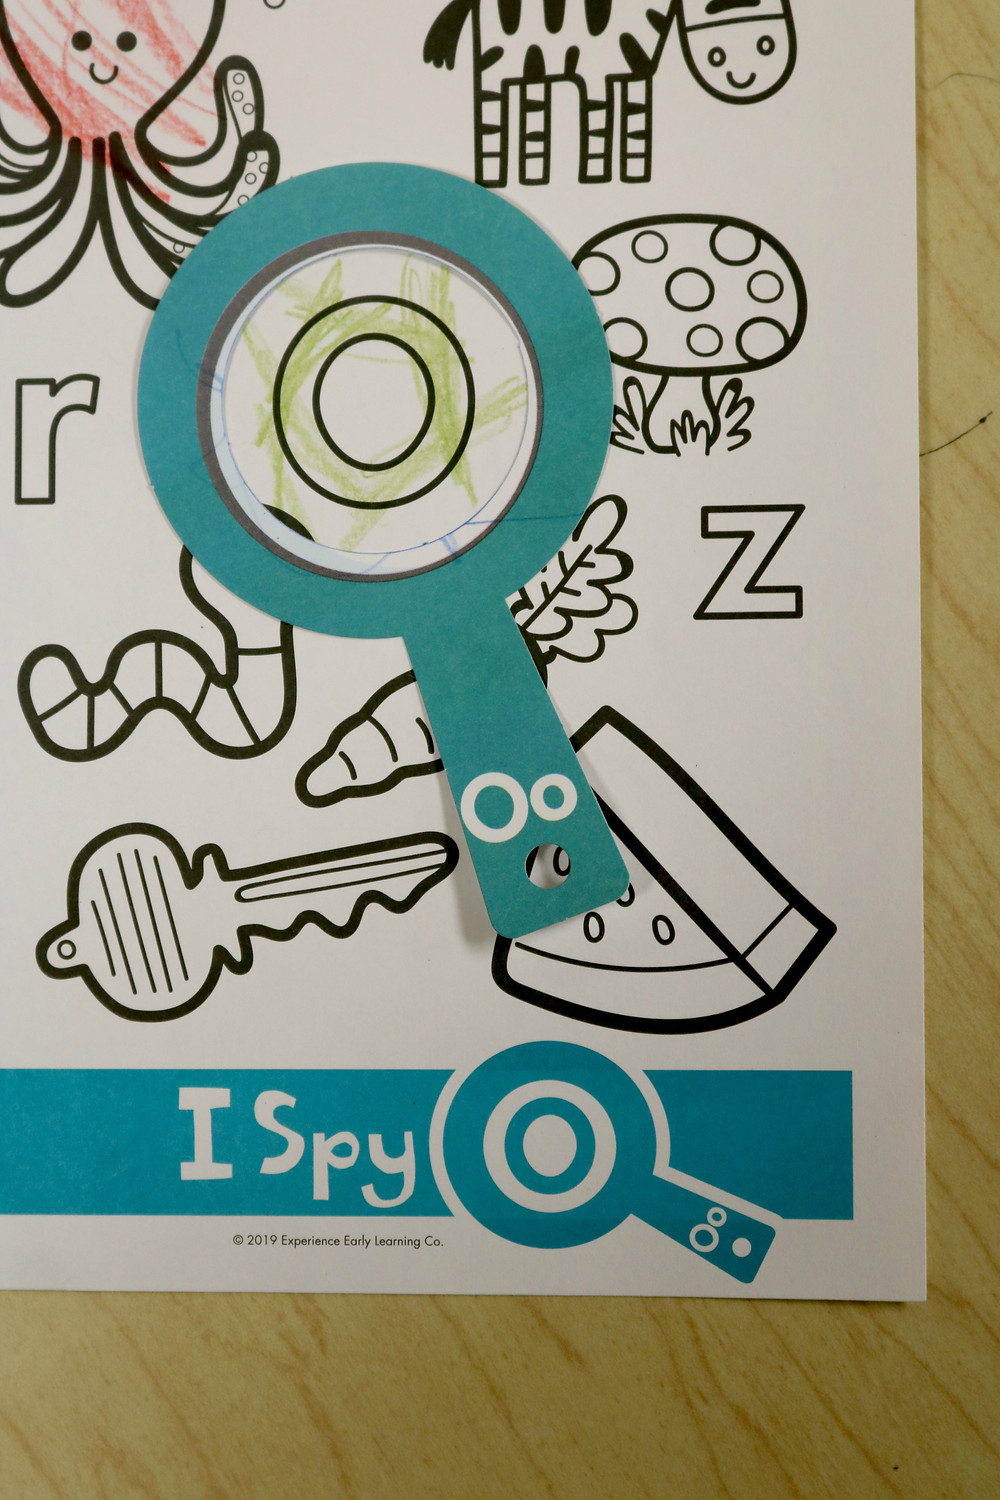 letter O coloring page with paper magnifying glass over the letter O